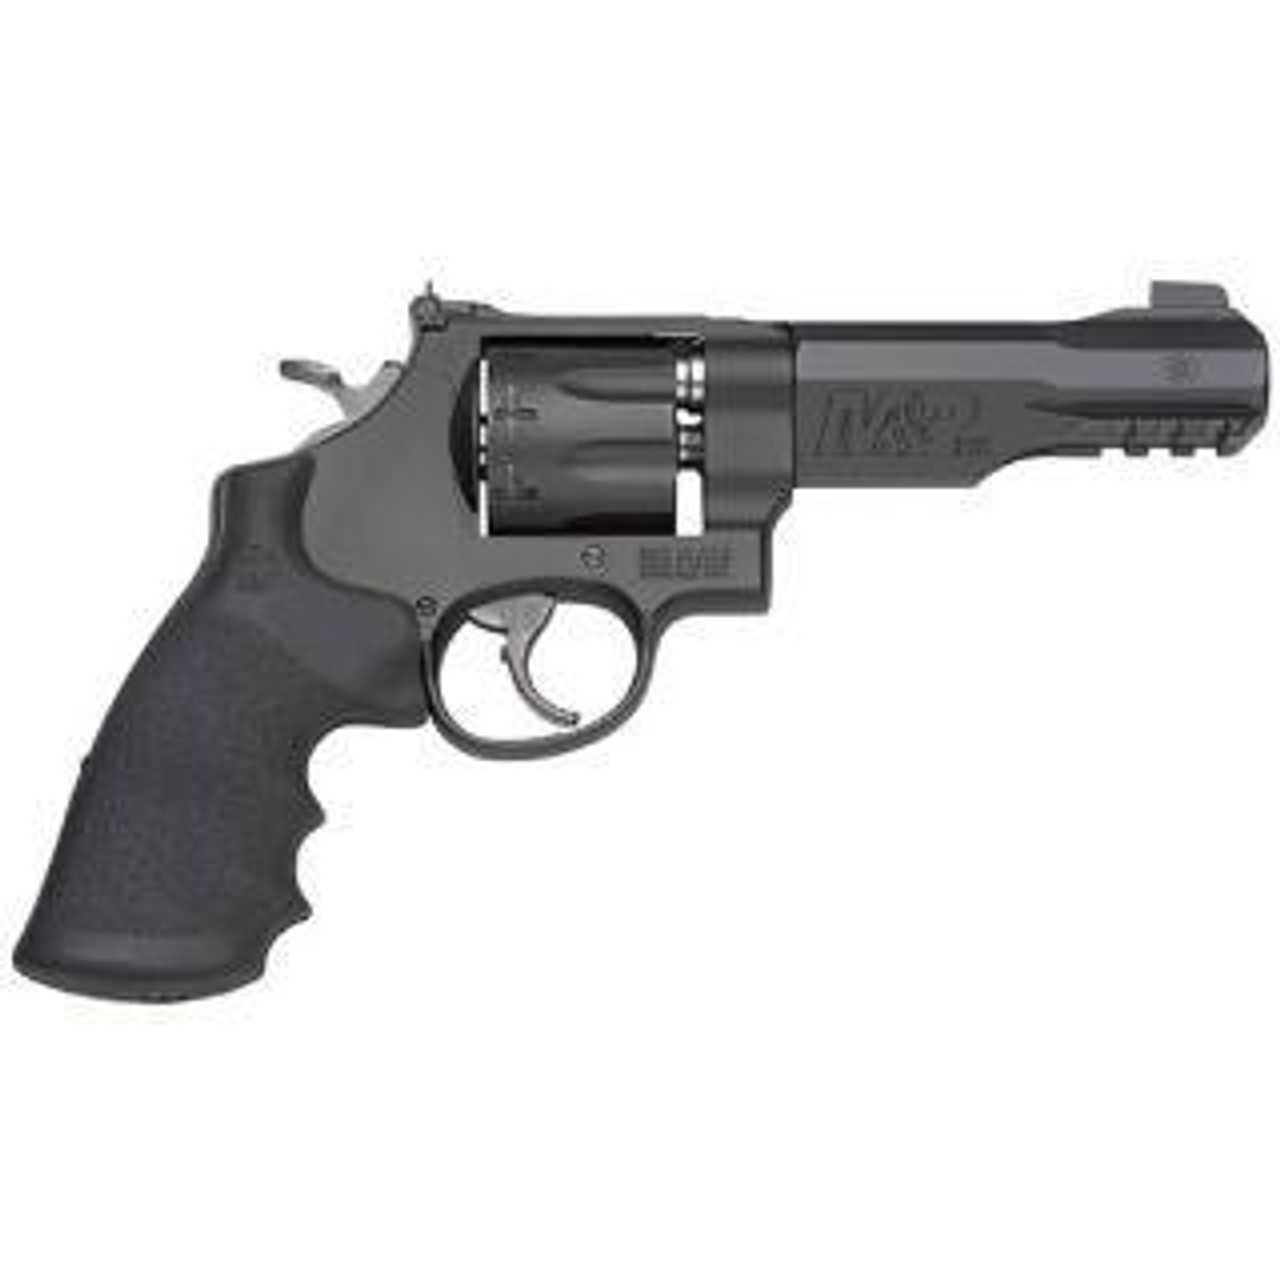 Smith & Wesson M&P R8 - California Legal .357